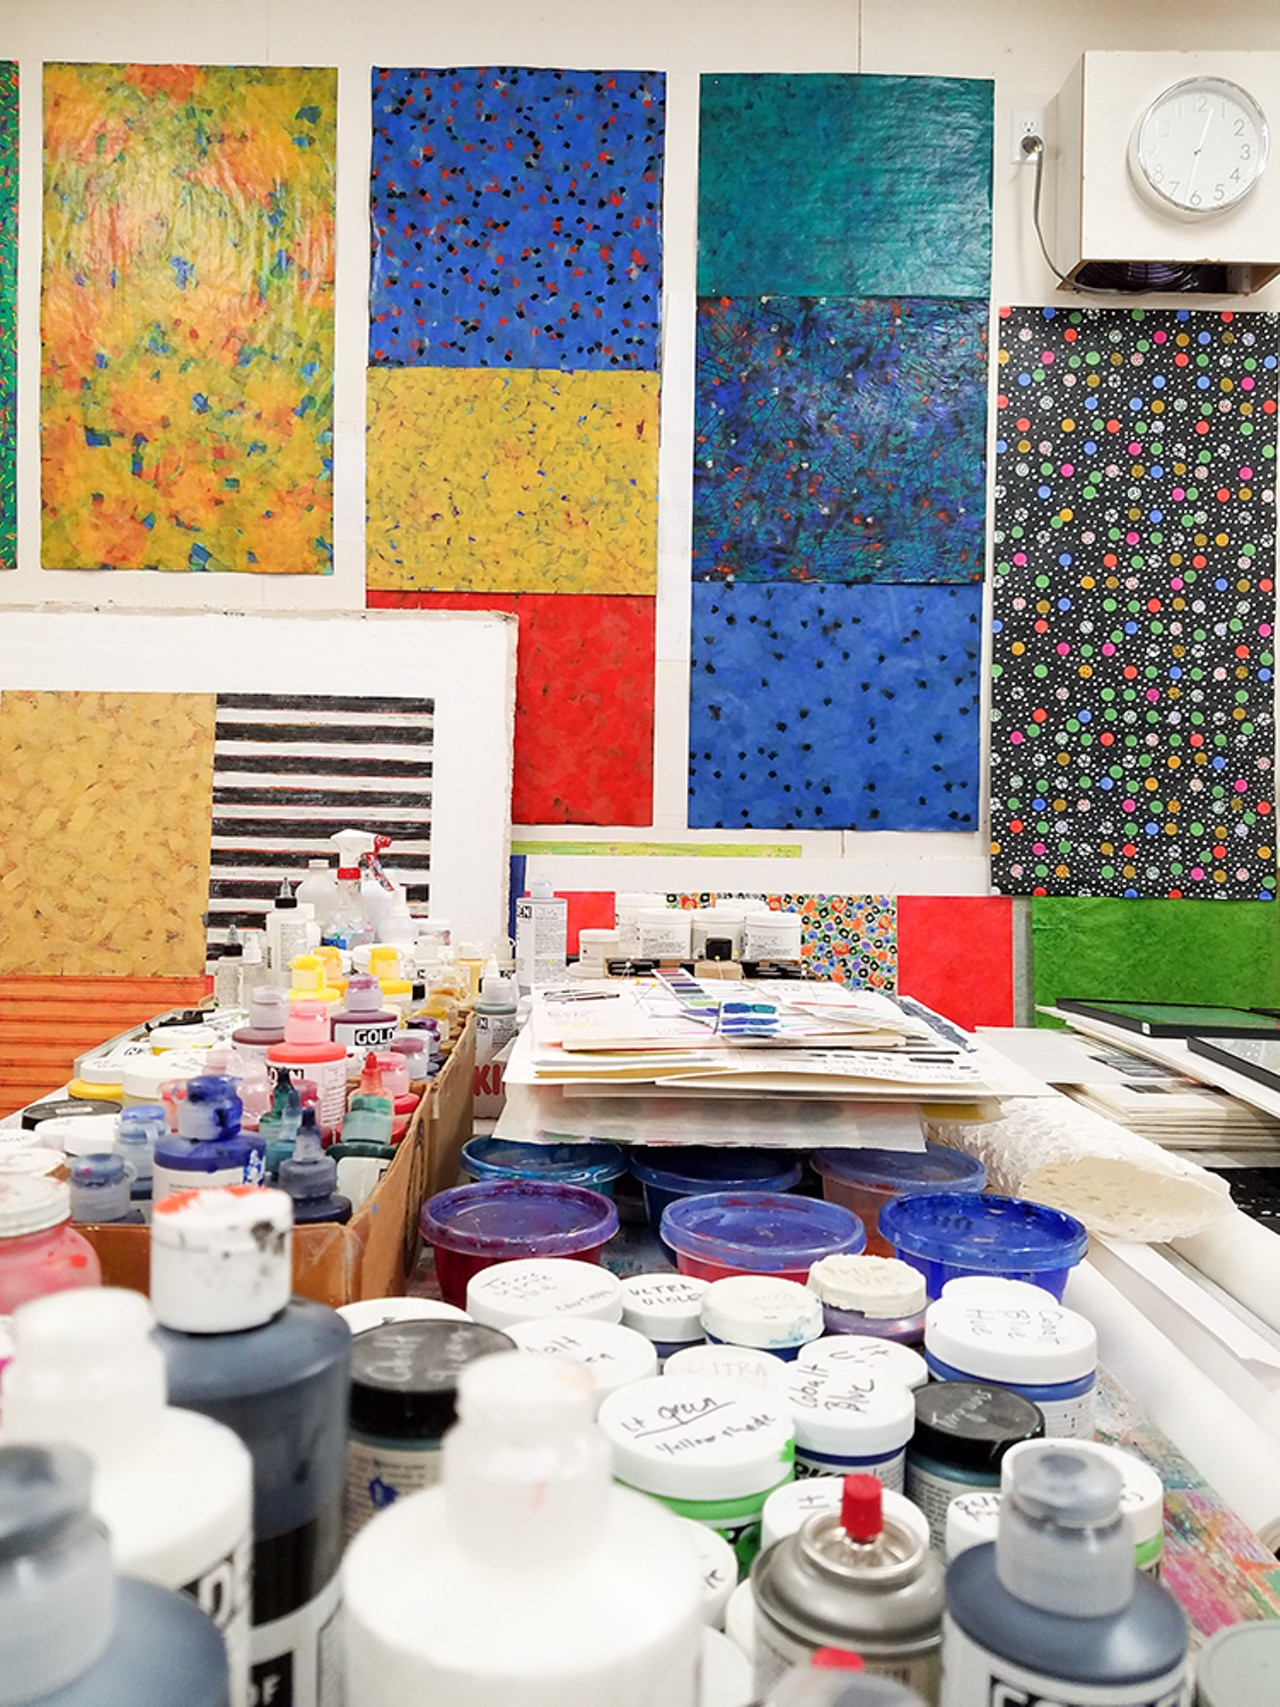 The interior of Joan Gold's dazzlingly patterned Eureka studio, where works in progress hang on the walls. Photo by Gabrielle Gopinath